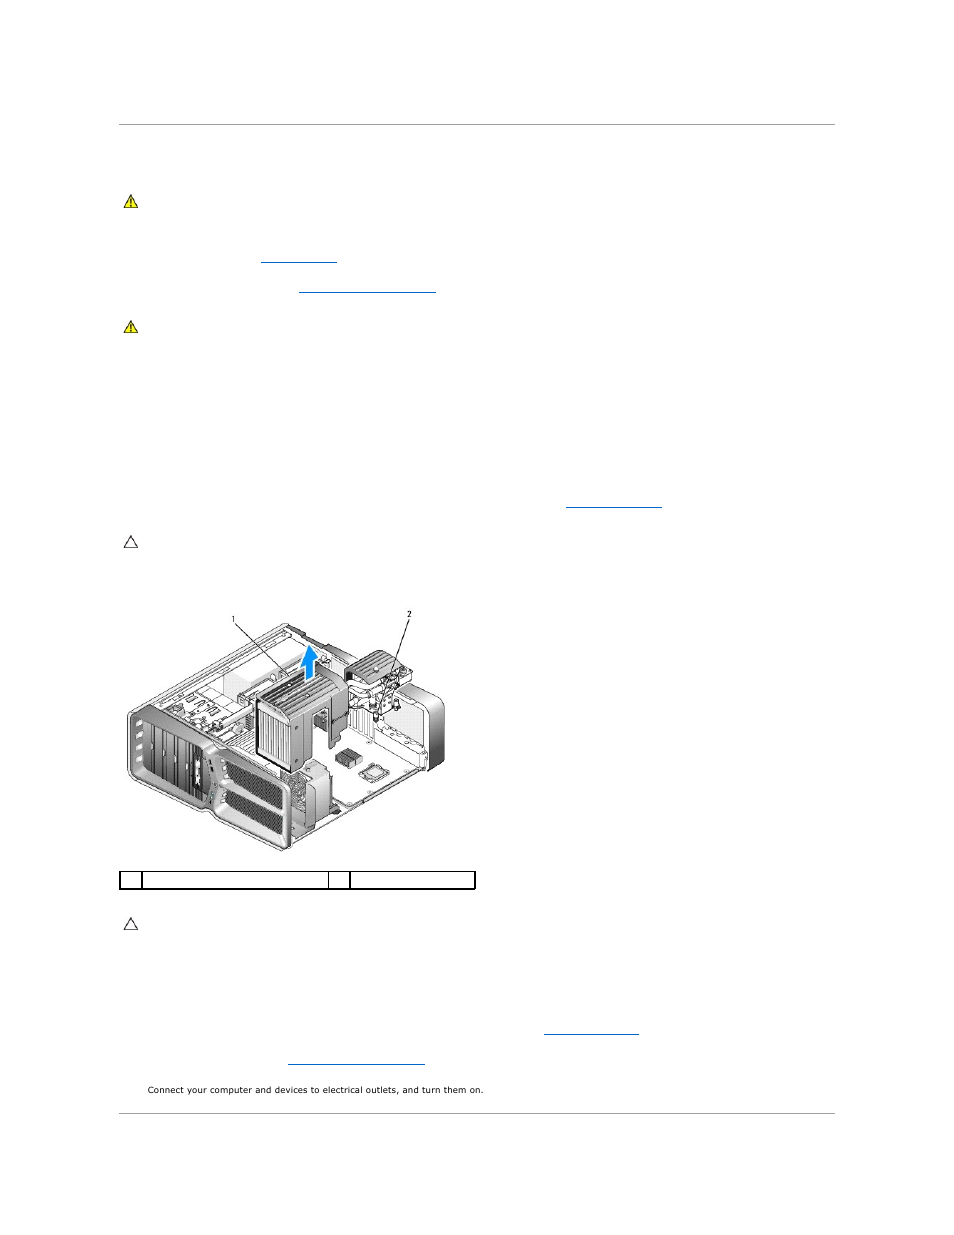 Dell Xps 730 Wiring Diagram Trusted Heat Sink Replacing The Liquid Cooling Assembly H2c Motherboard Replacement